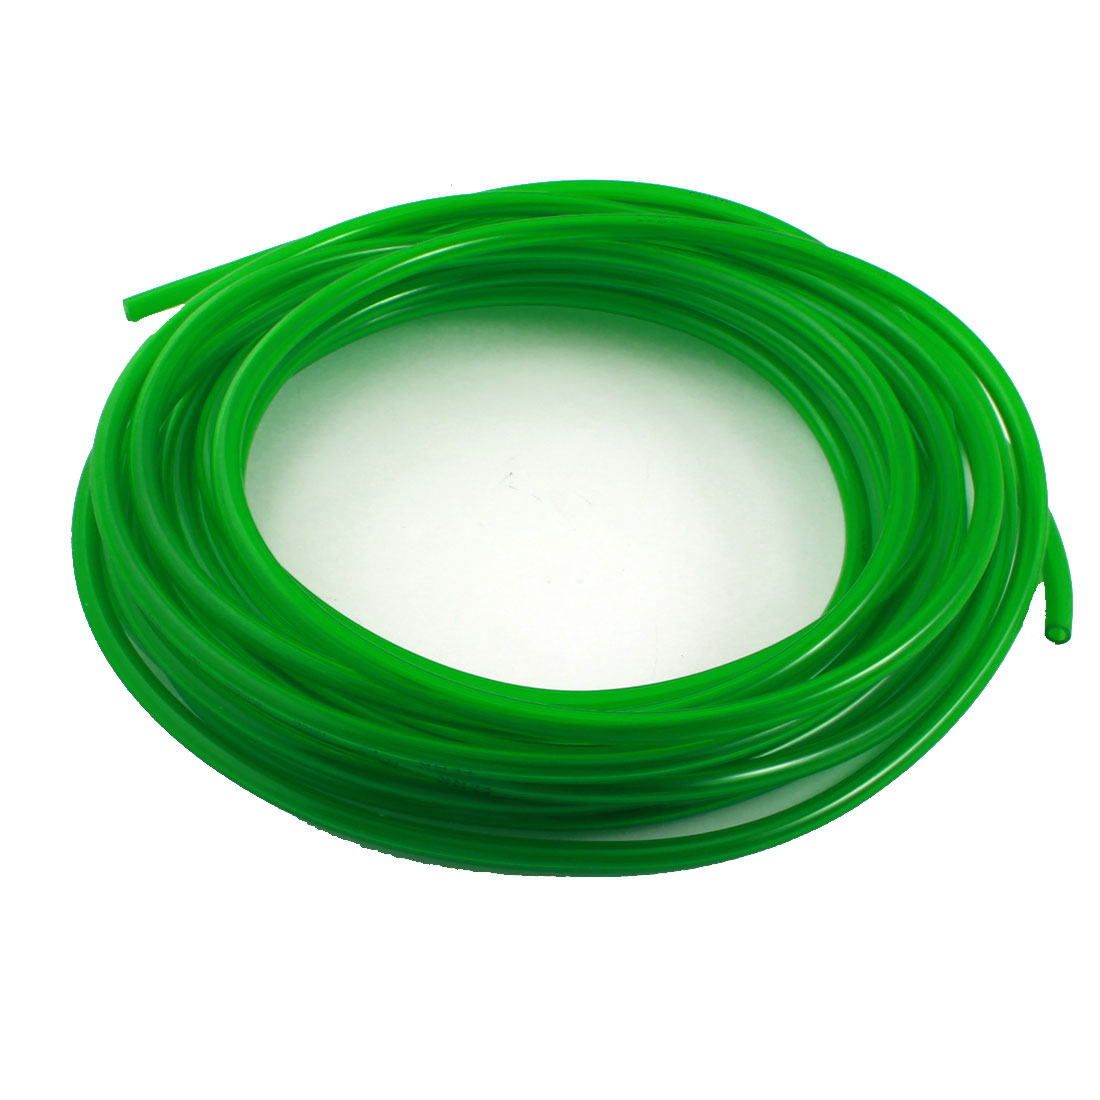 10M/33Ft Length 5mmx8mm Polyurethane Fuel Gas Petrol Diesel Flexible Hose Air PU Tube Pneumatic Pipe Clear Green